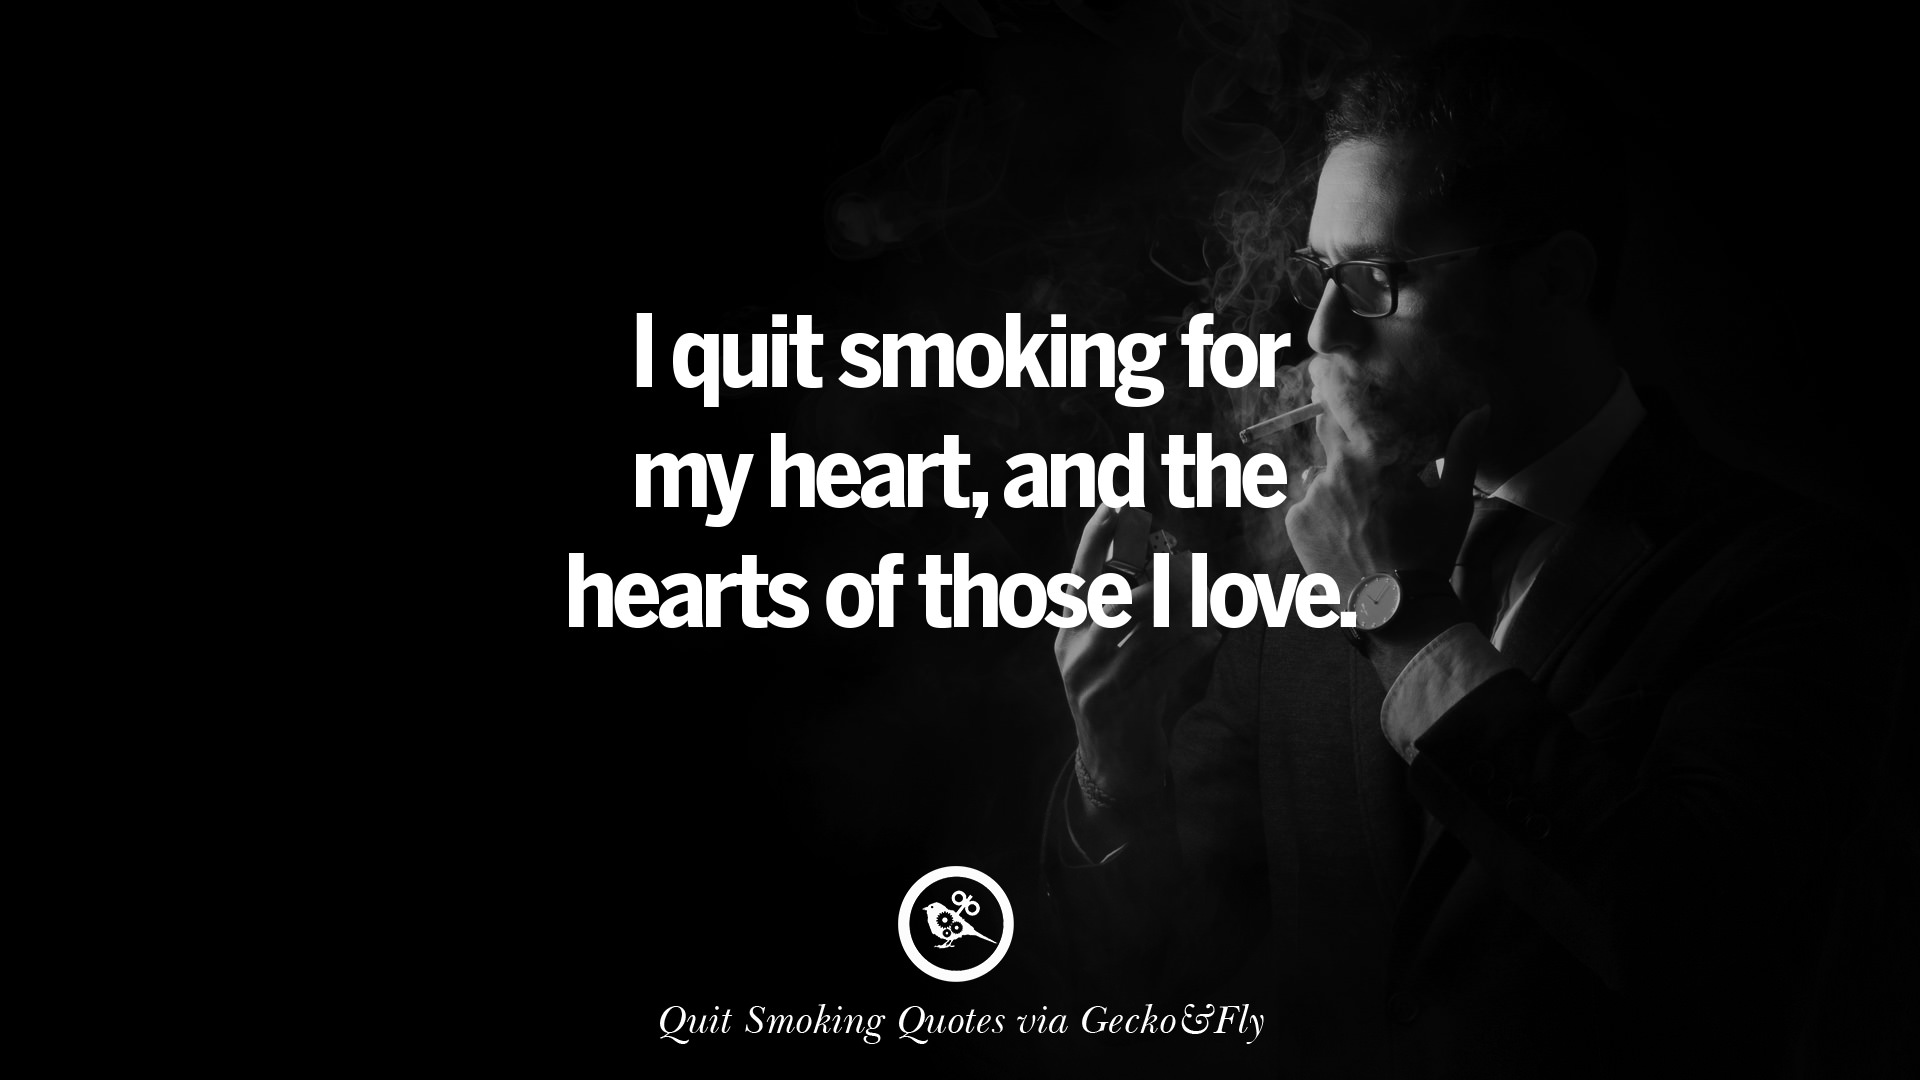 20 Slogans To Help You Quit Smoking And Stop Lungs Cancer